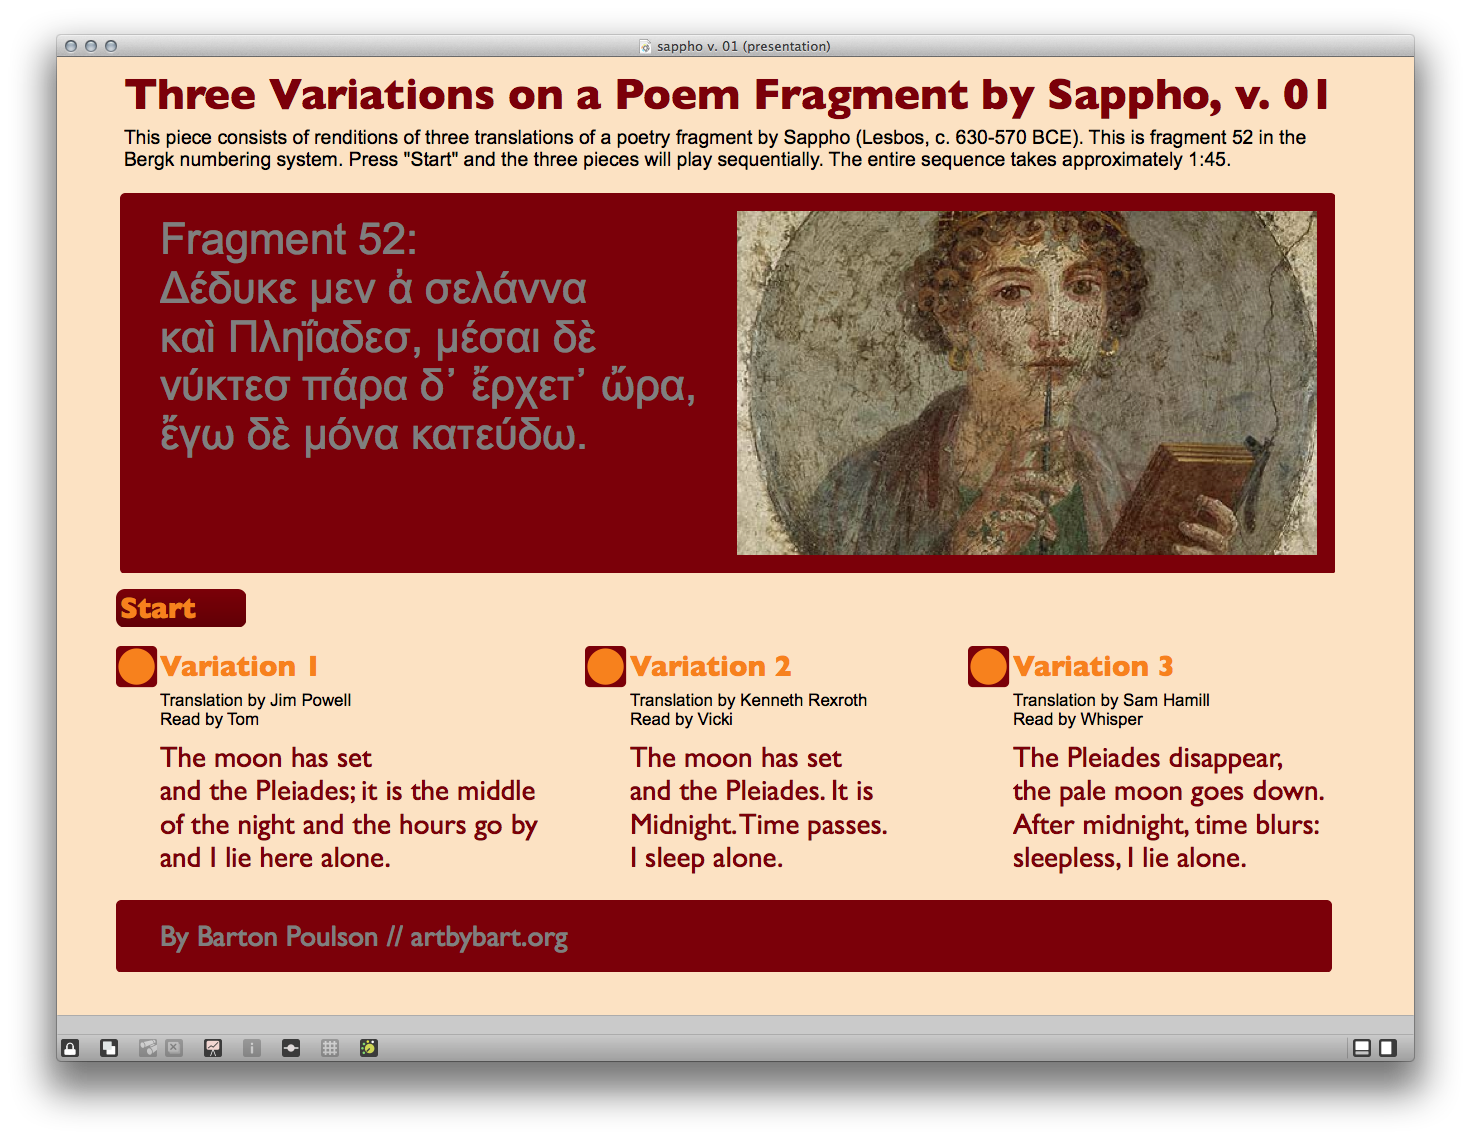 sappho-patch-image-01.png